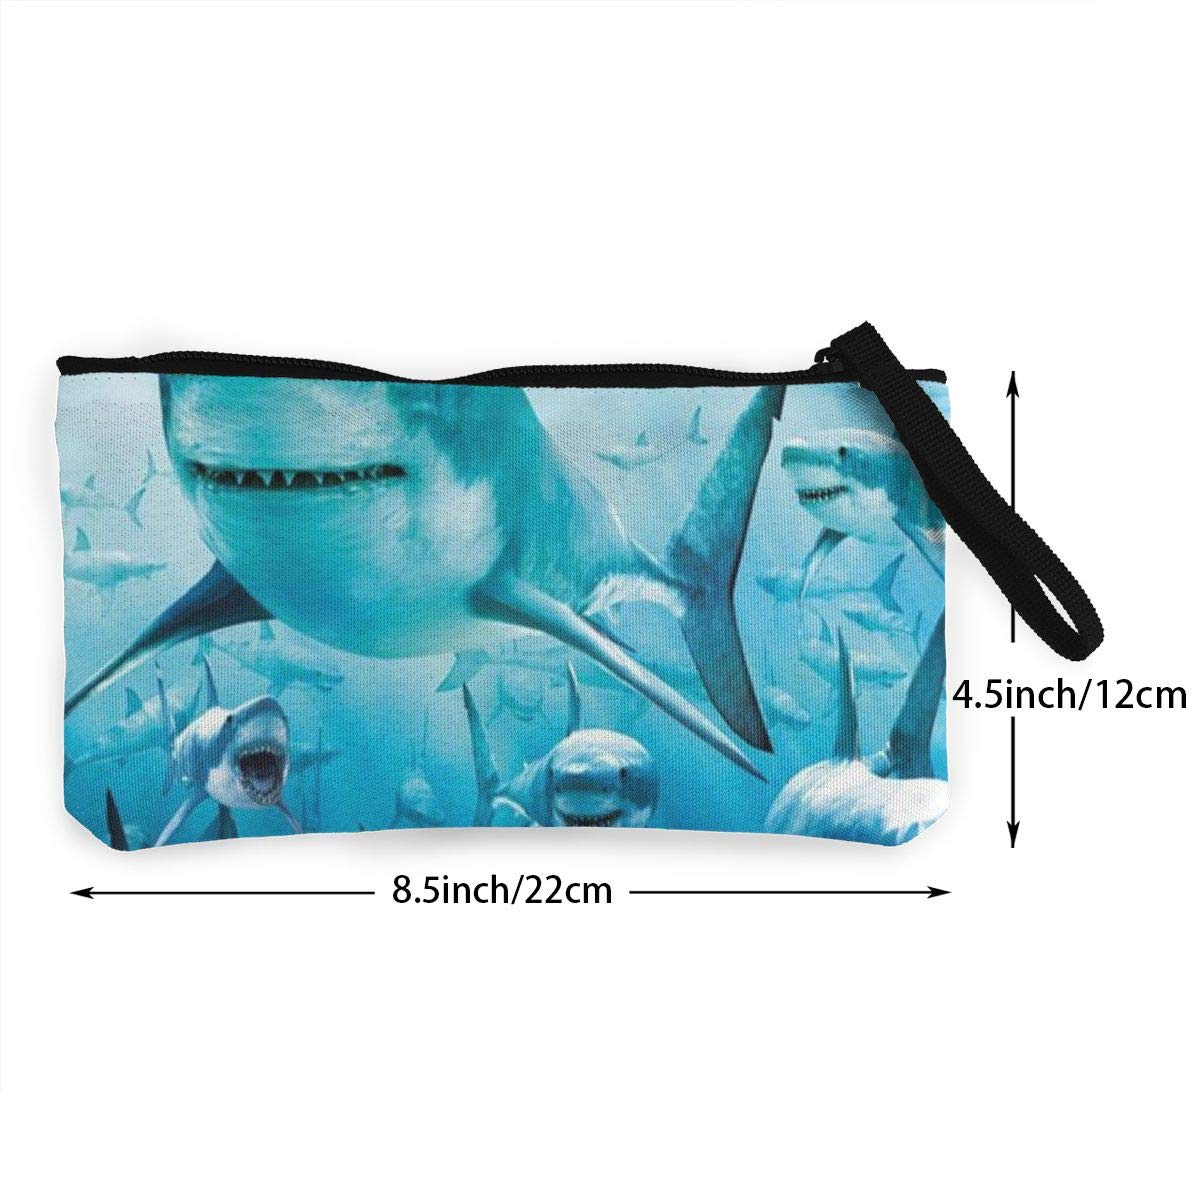 DH14hjsdDEE Shark Under The Sea Zipper Canvas Coin Purse Wallet Make Up Bag Cellphone Bag With Handle